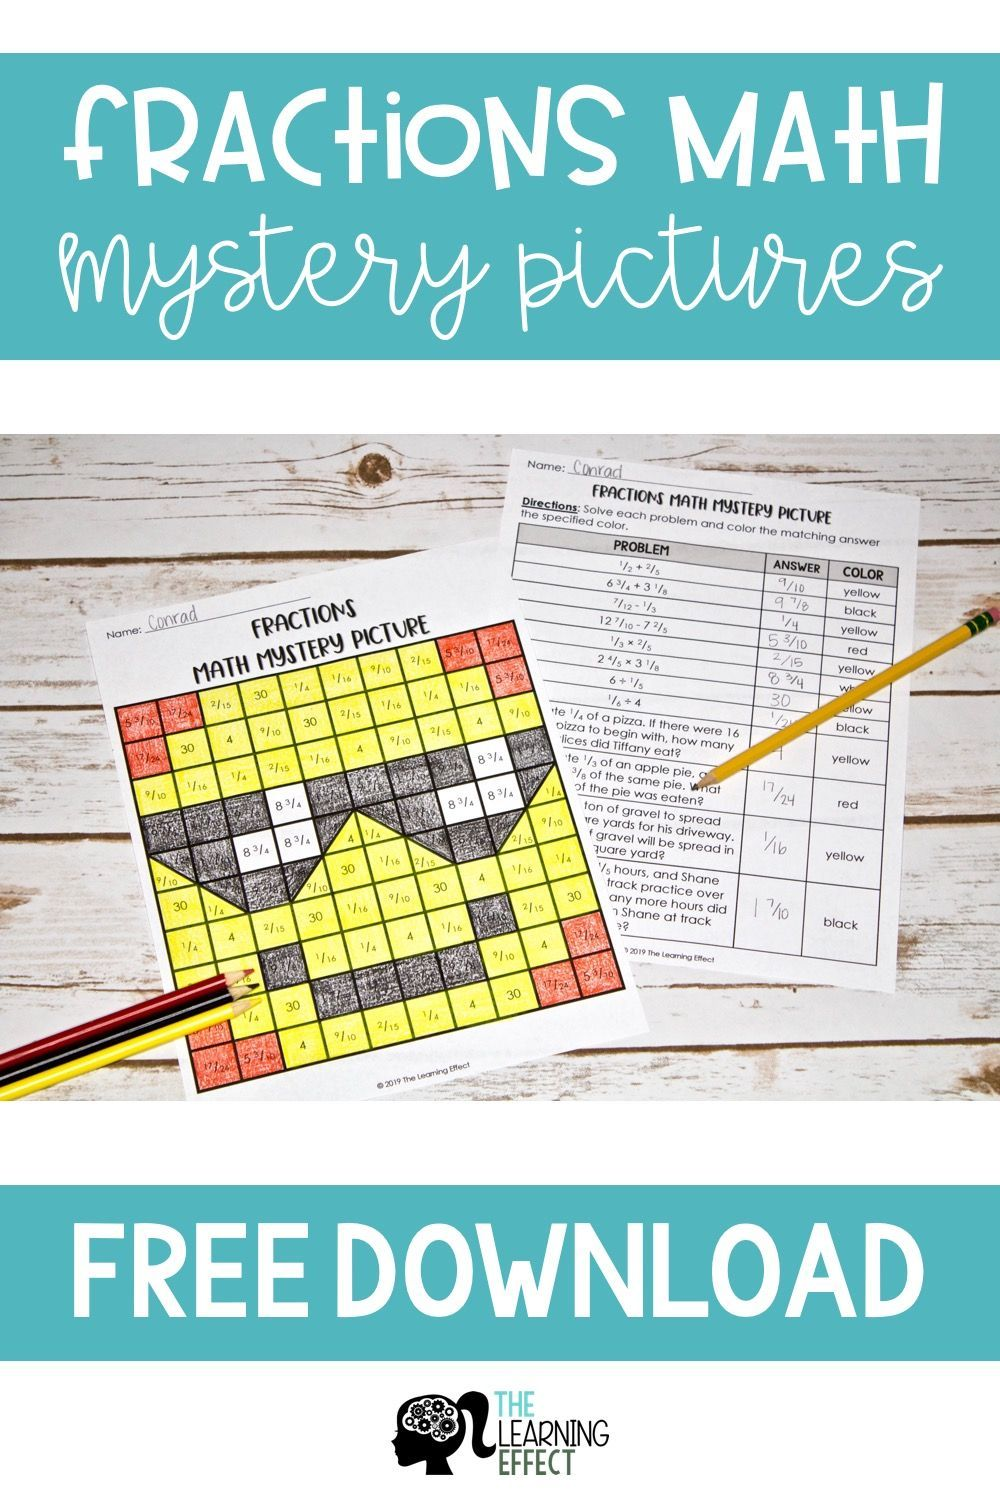 small resolution of FREE Fractions Math Mystery Picture - Practice adding